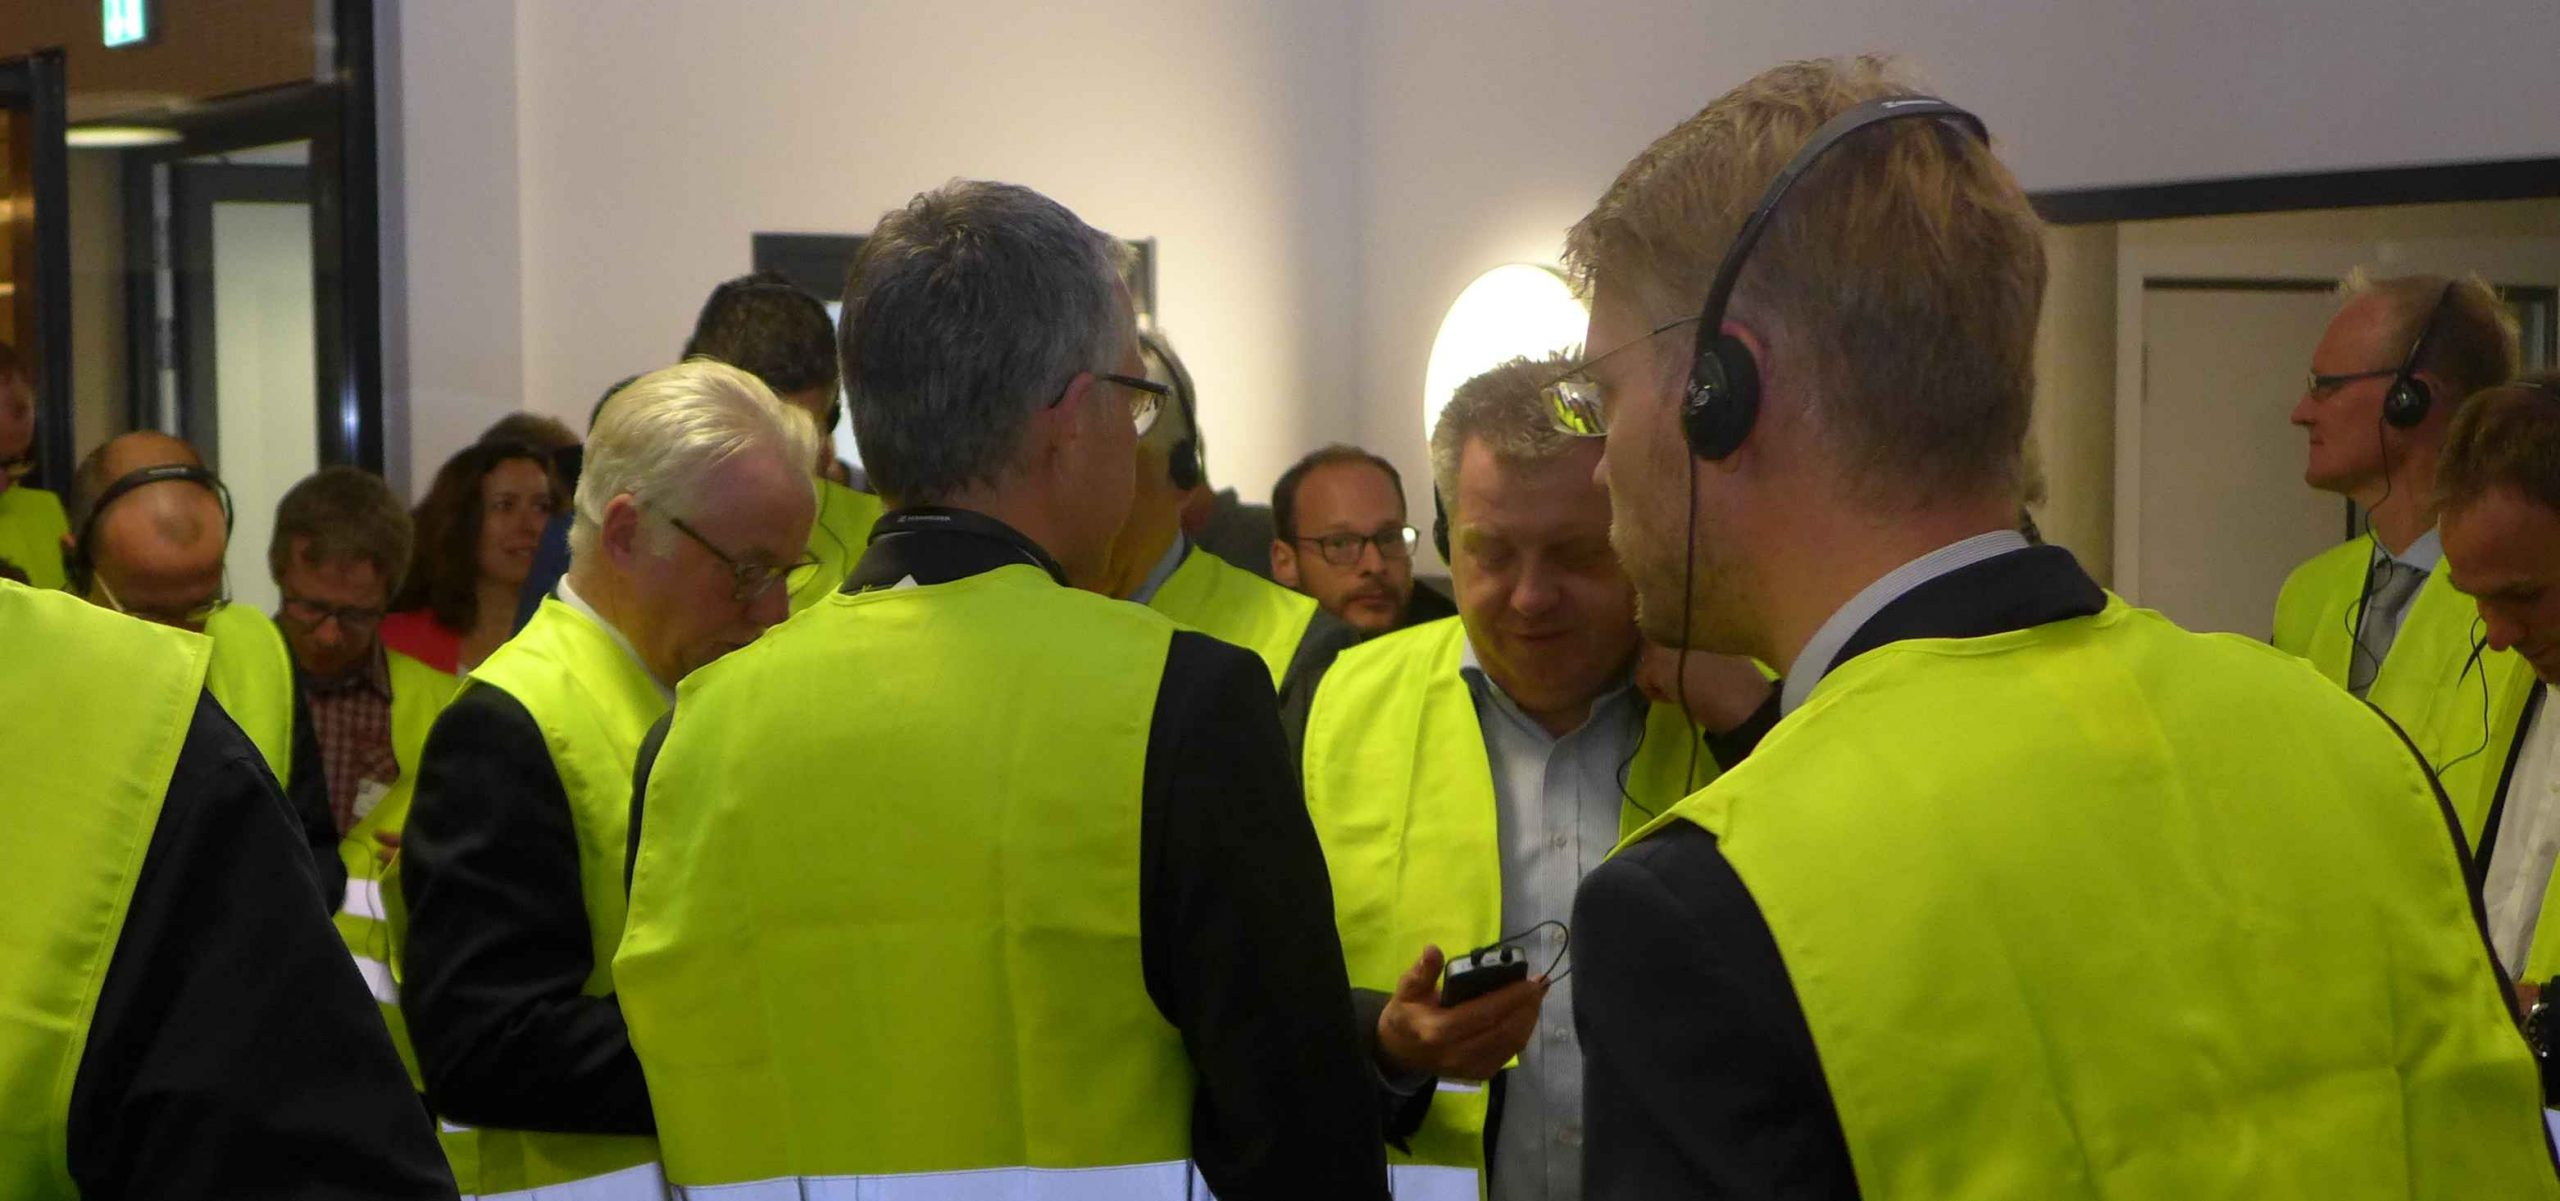 Großes FORUM on tour egeplast_Gruppe Werksbesichtigung